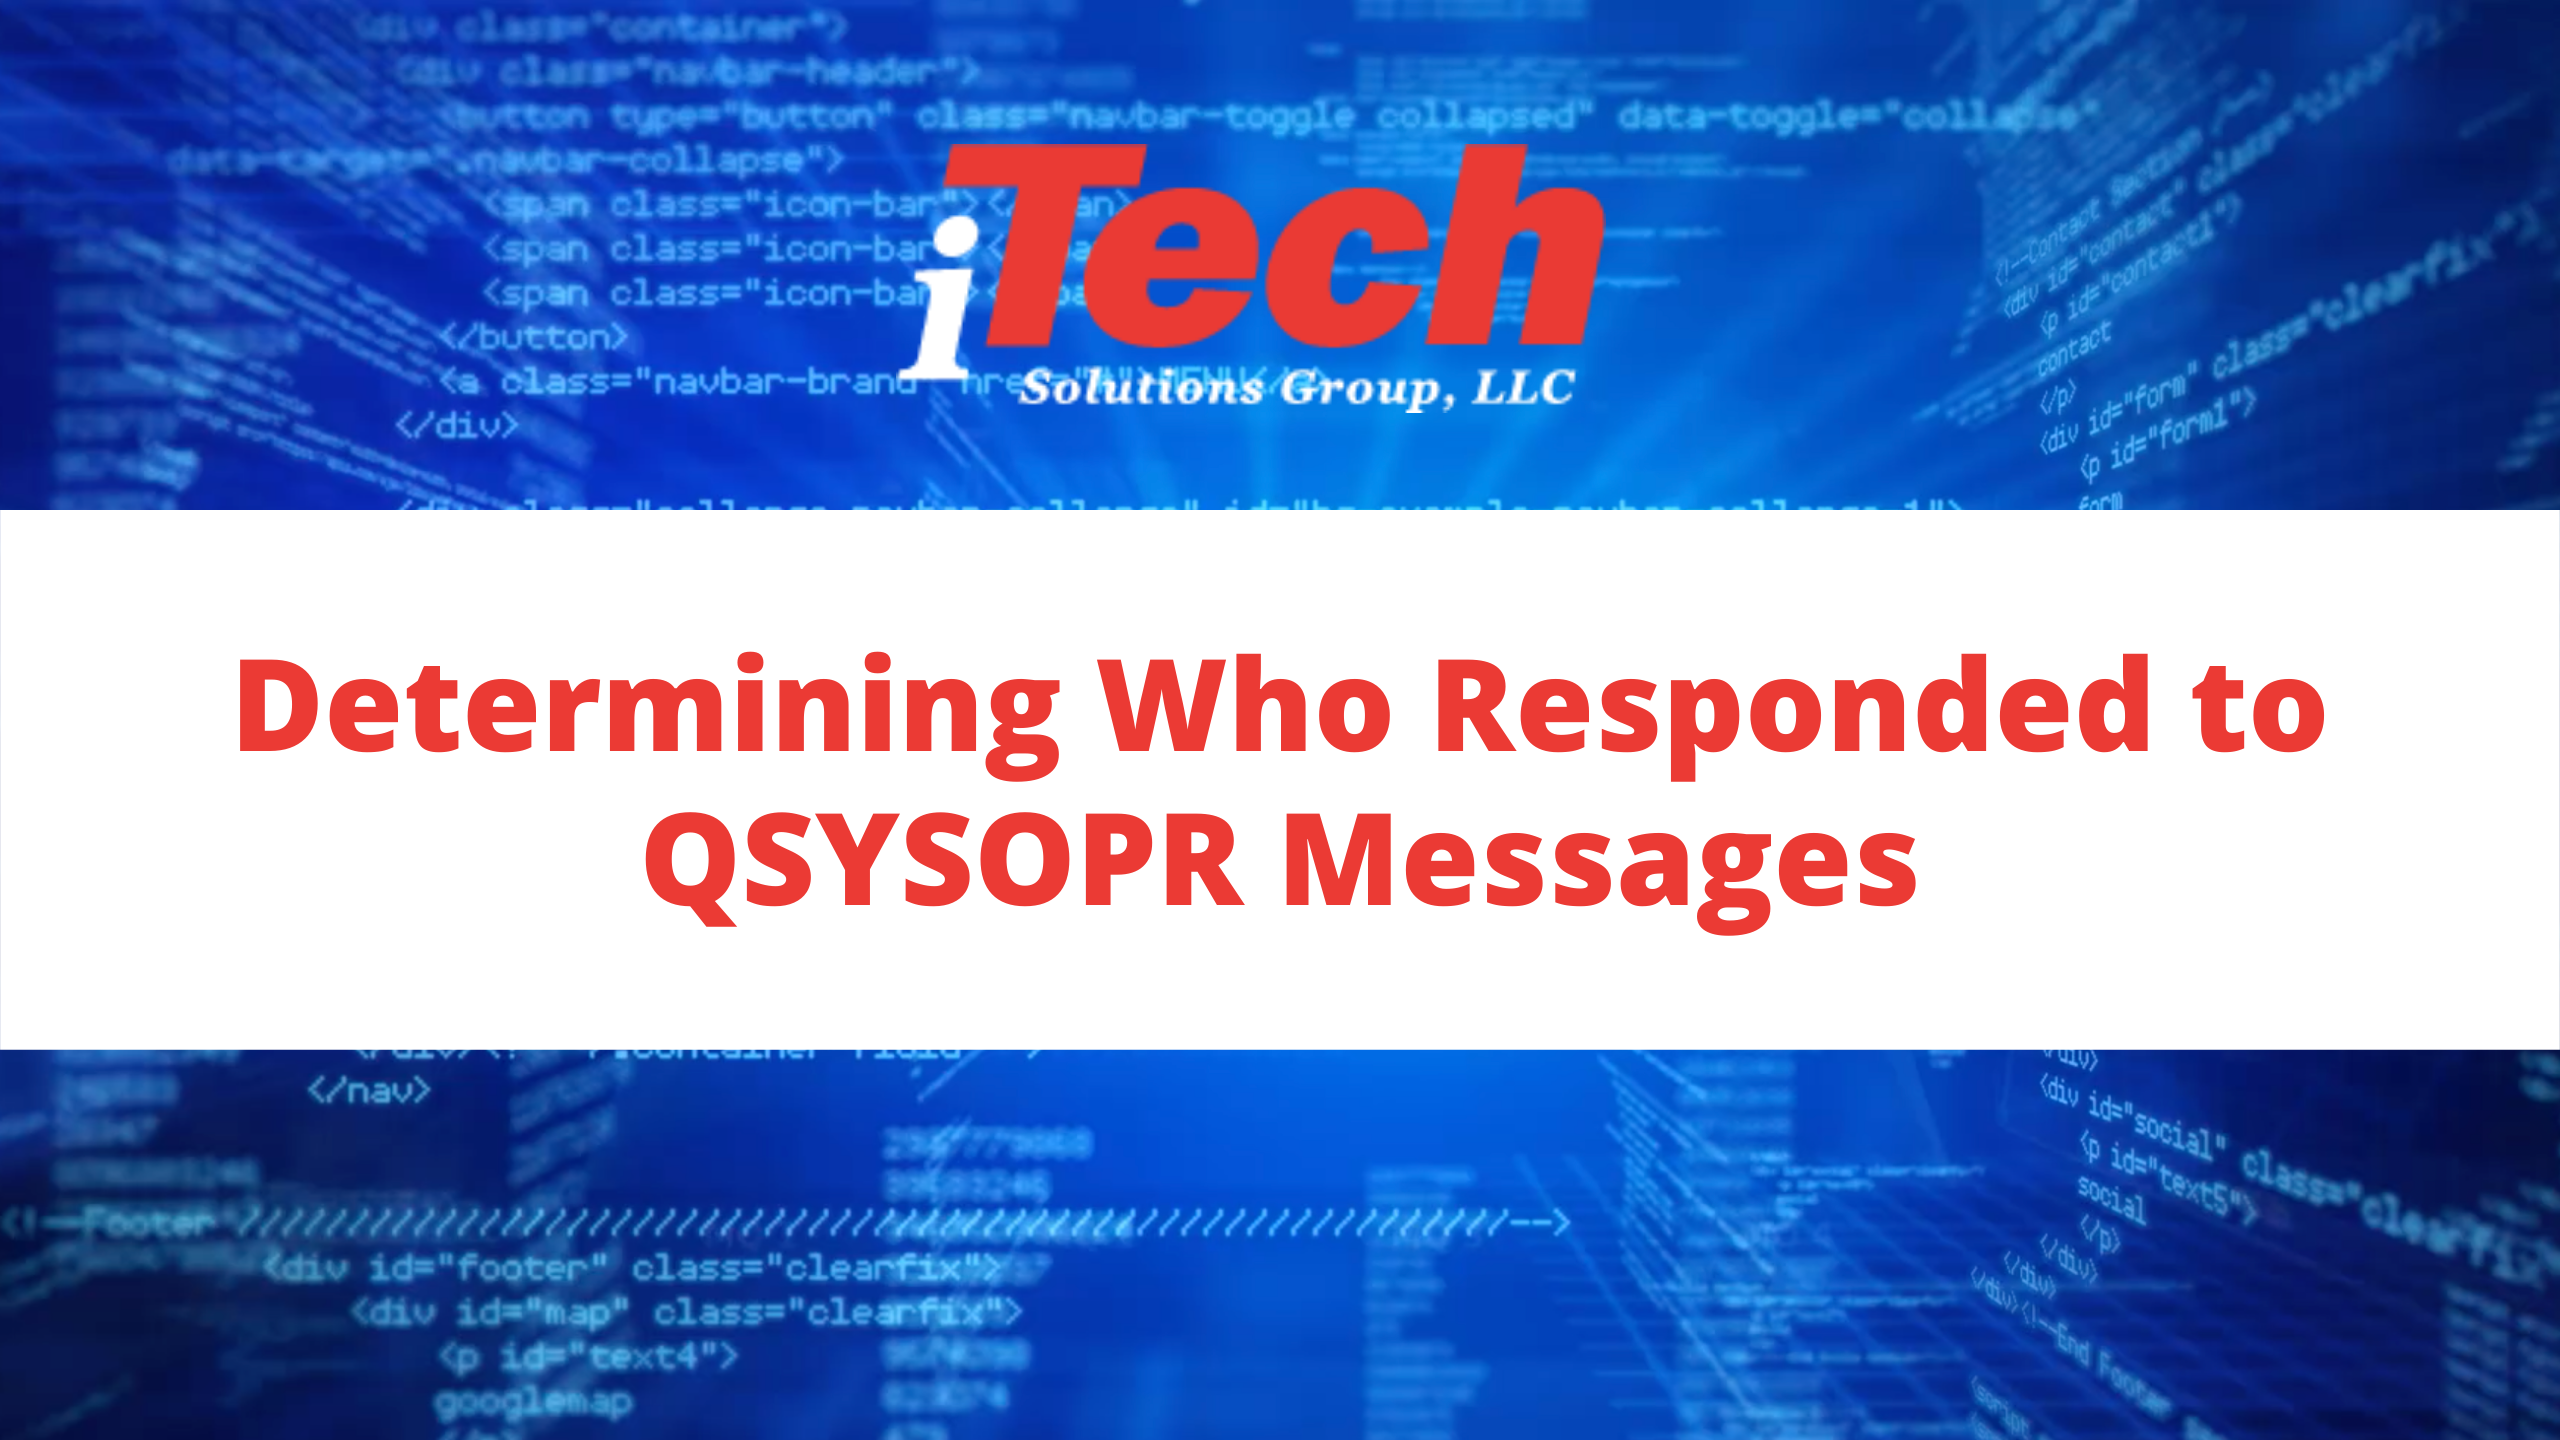 Determining Who Responded to QSYSOPR Messages